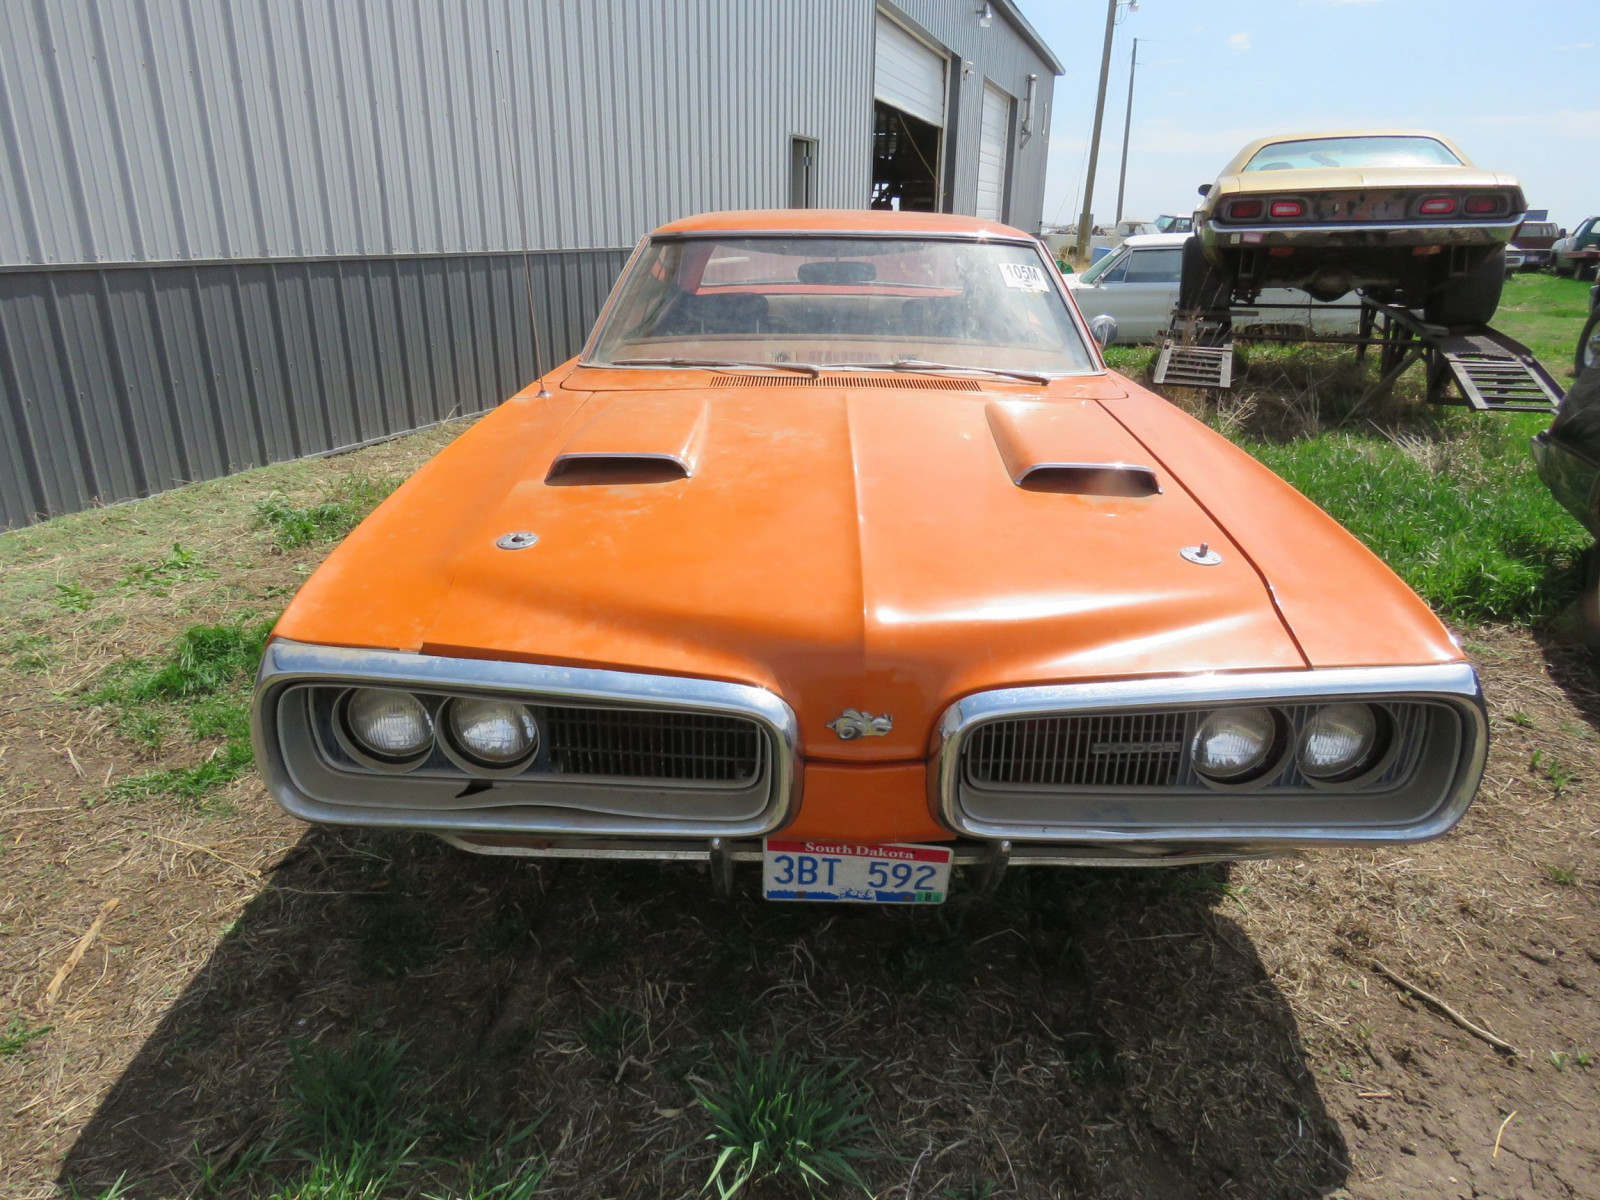 1970 Dodge Super Bee 440 6 Pack Coupe - Image 2